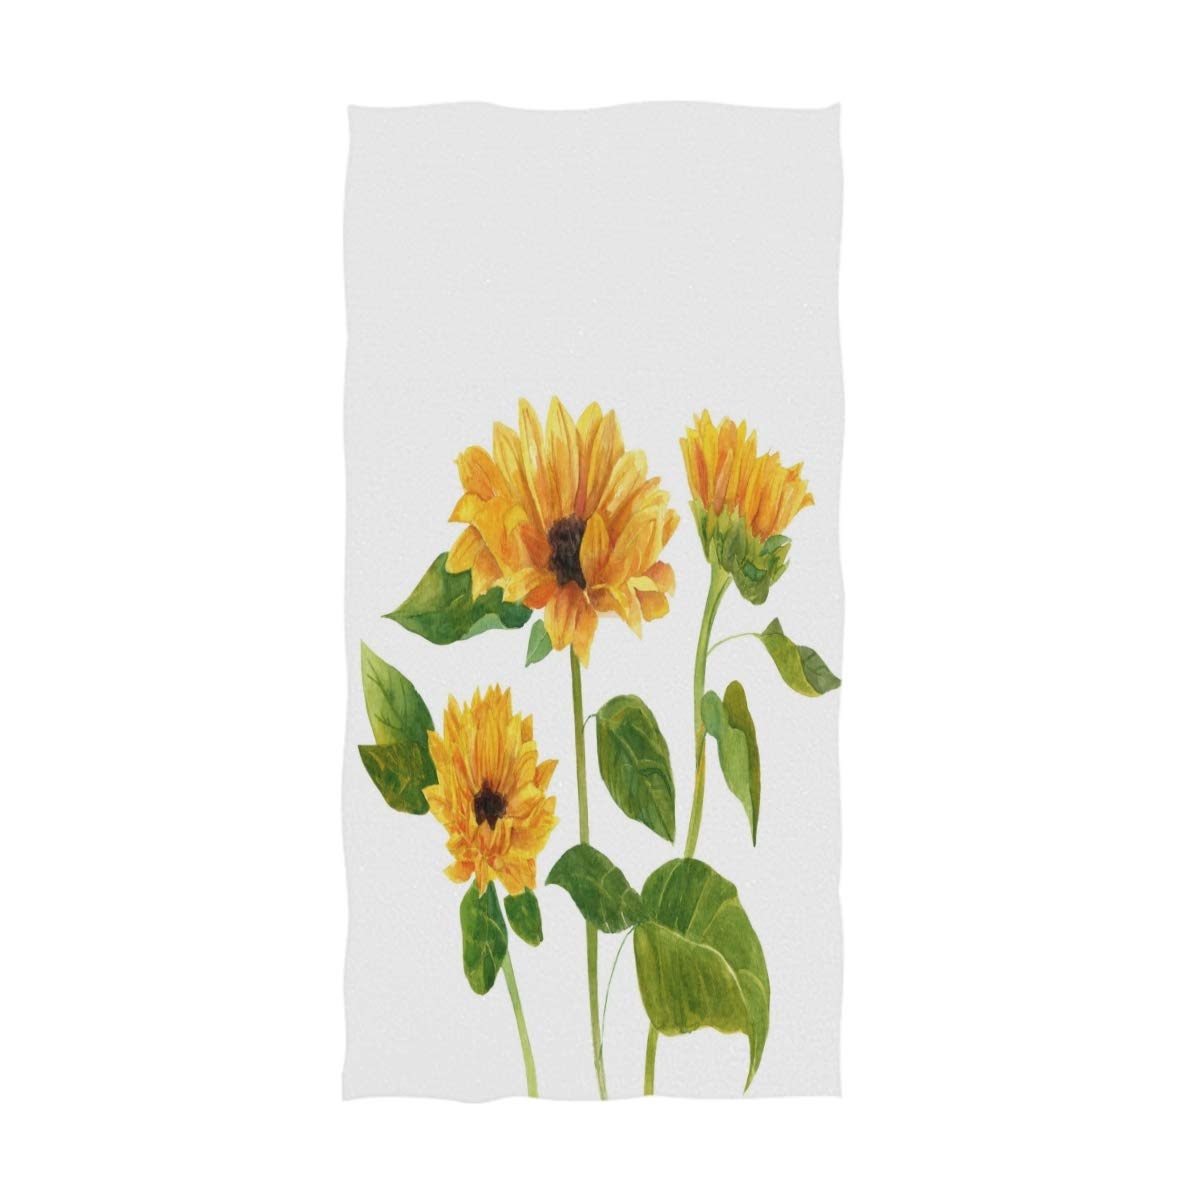 Wamika Sunflowers Hand Towels Autumn Sunflower Poppy Bath Bathroom Towel Multipurpose Fingertip Towels Highly Absorbent for Bath,Hand,Face,Gym,Spa,30 X 15 Inch